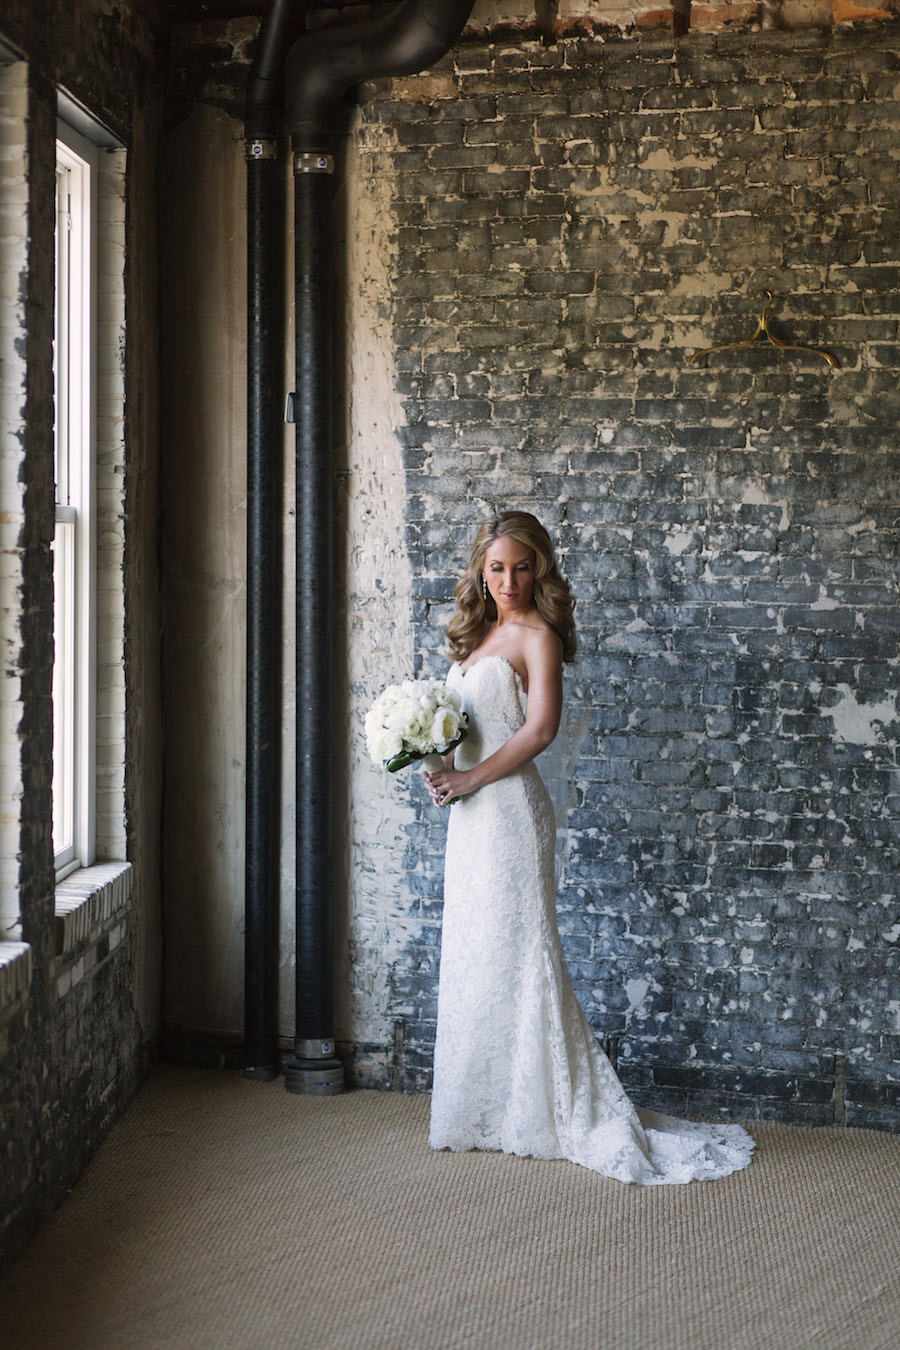 Bridal Wedding Portrait in Ivory, Lace Strapless Dress, Lace Veil, and White Floral Wedding Bouquet of Flowers with Industrial Brick Wall Backdrop